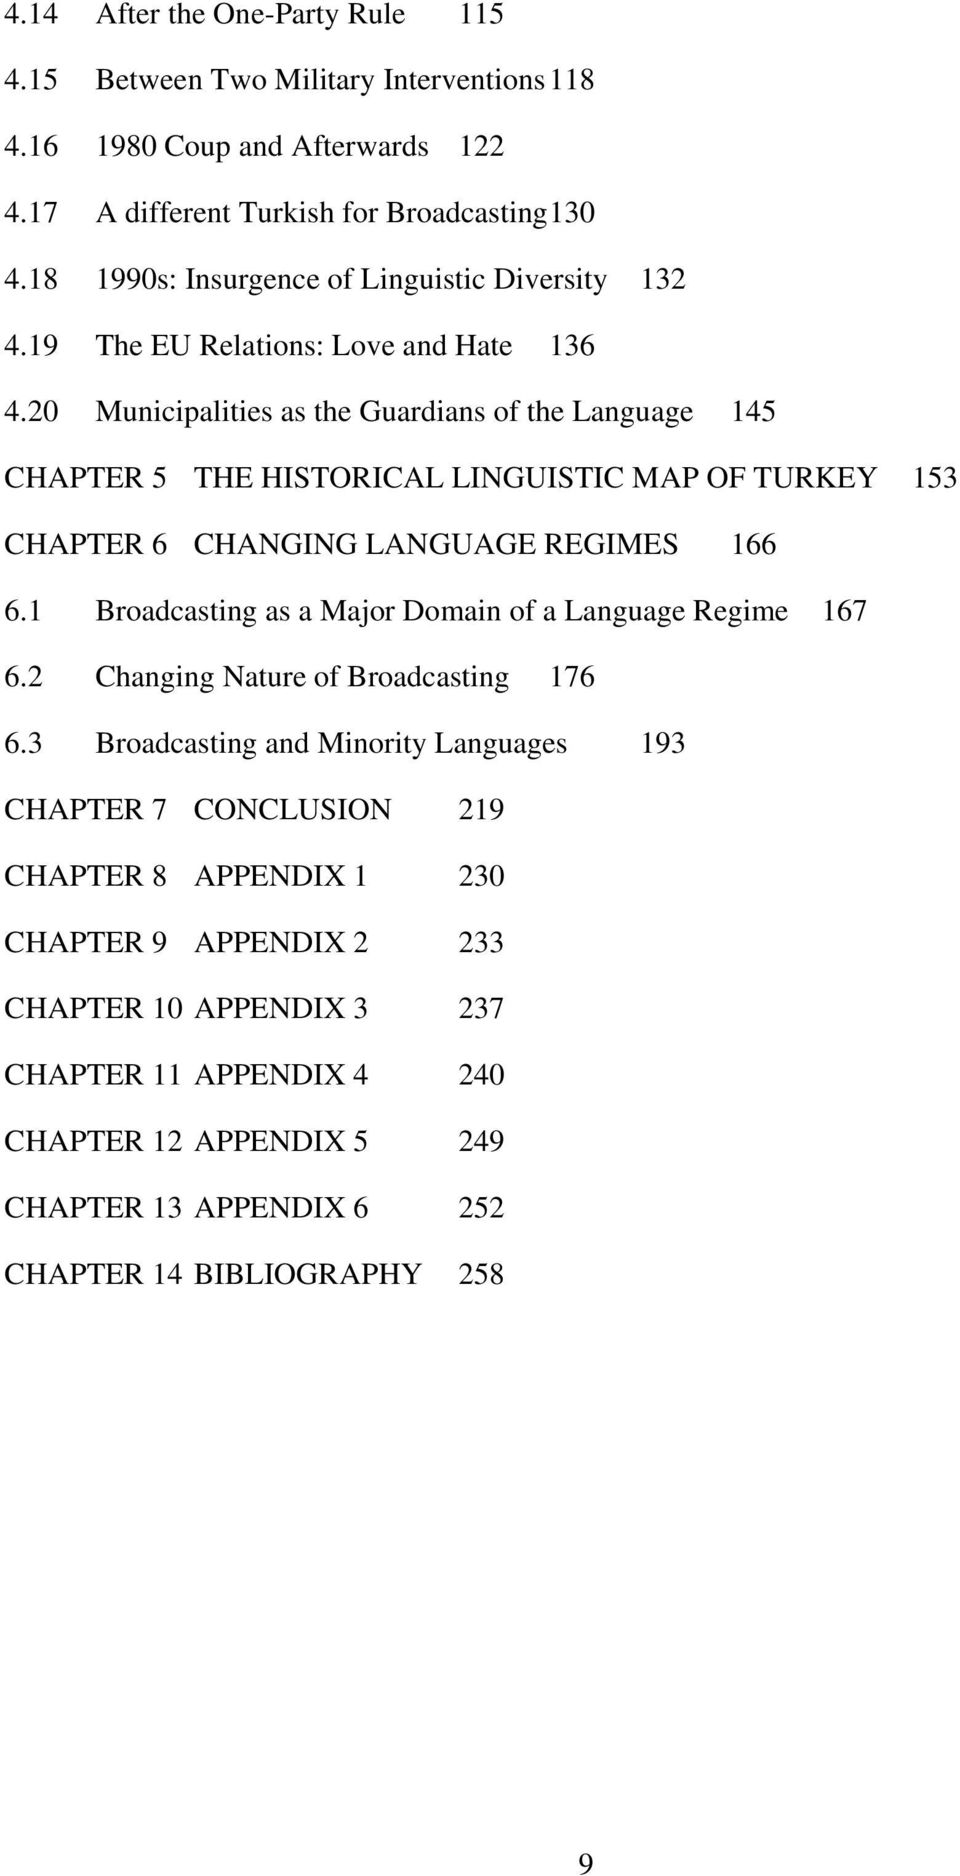 20 Municipalities as the Guardians of the Language 145 CHAPTER 5 THE HISTORICAL LINGUISTIC MAP OF TURKEY 153 CHAPTER 6 CHANGING LANGUAGE REGIMES 166 6.